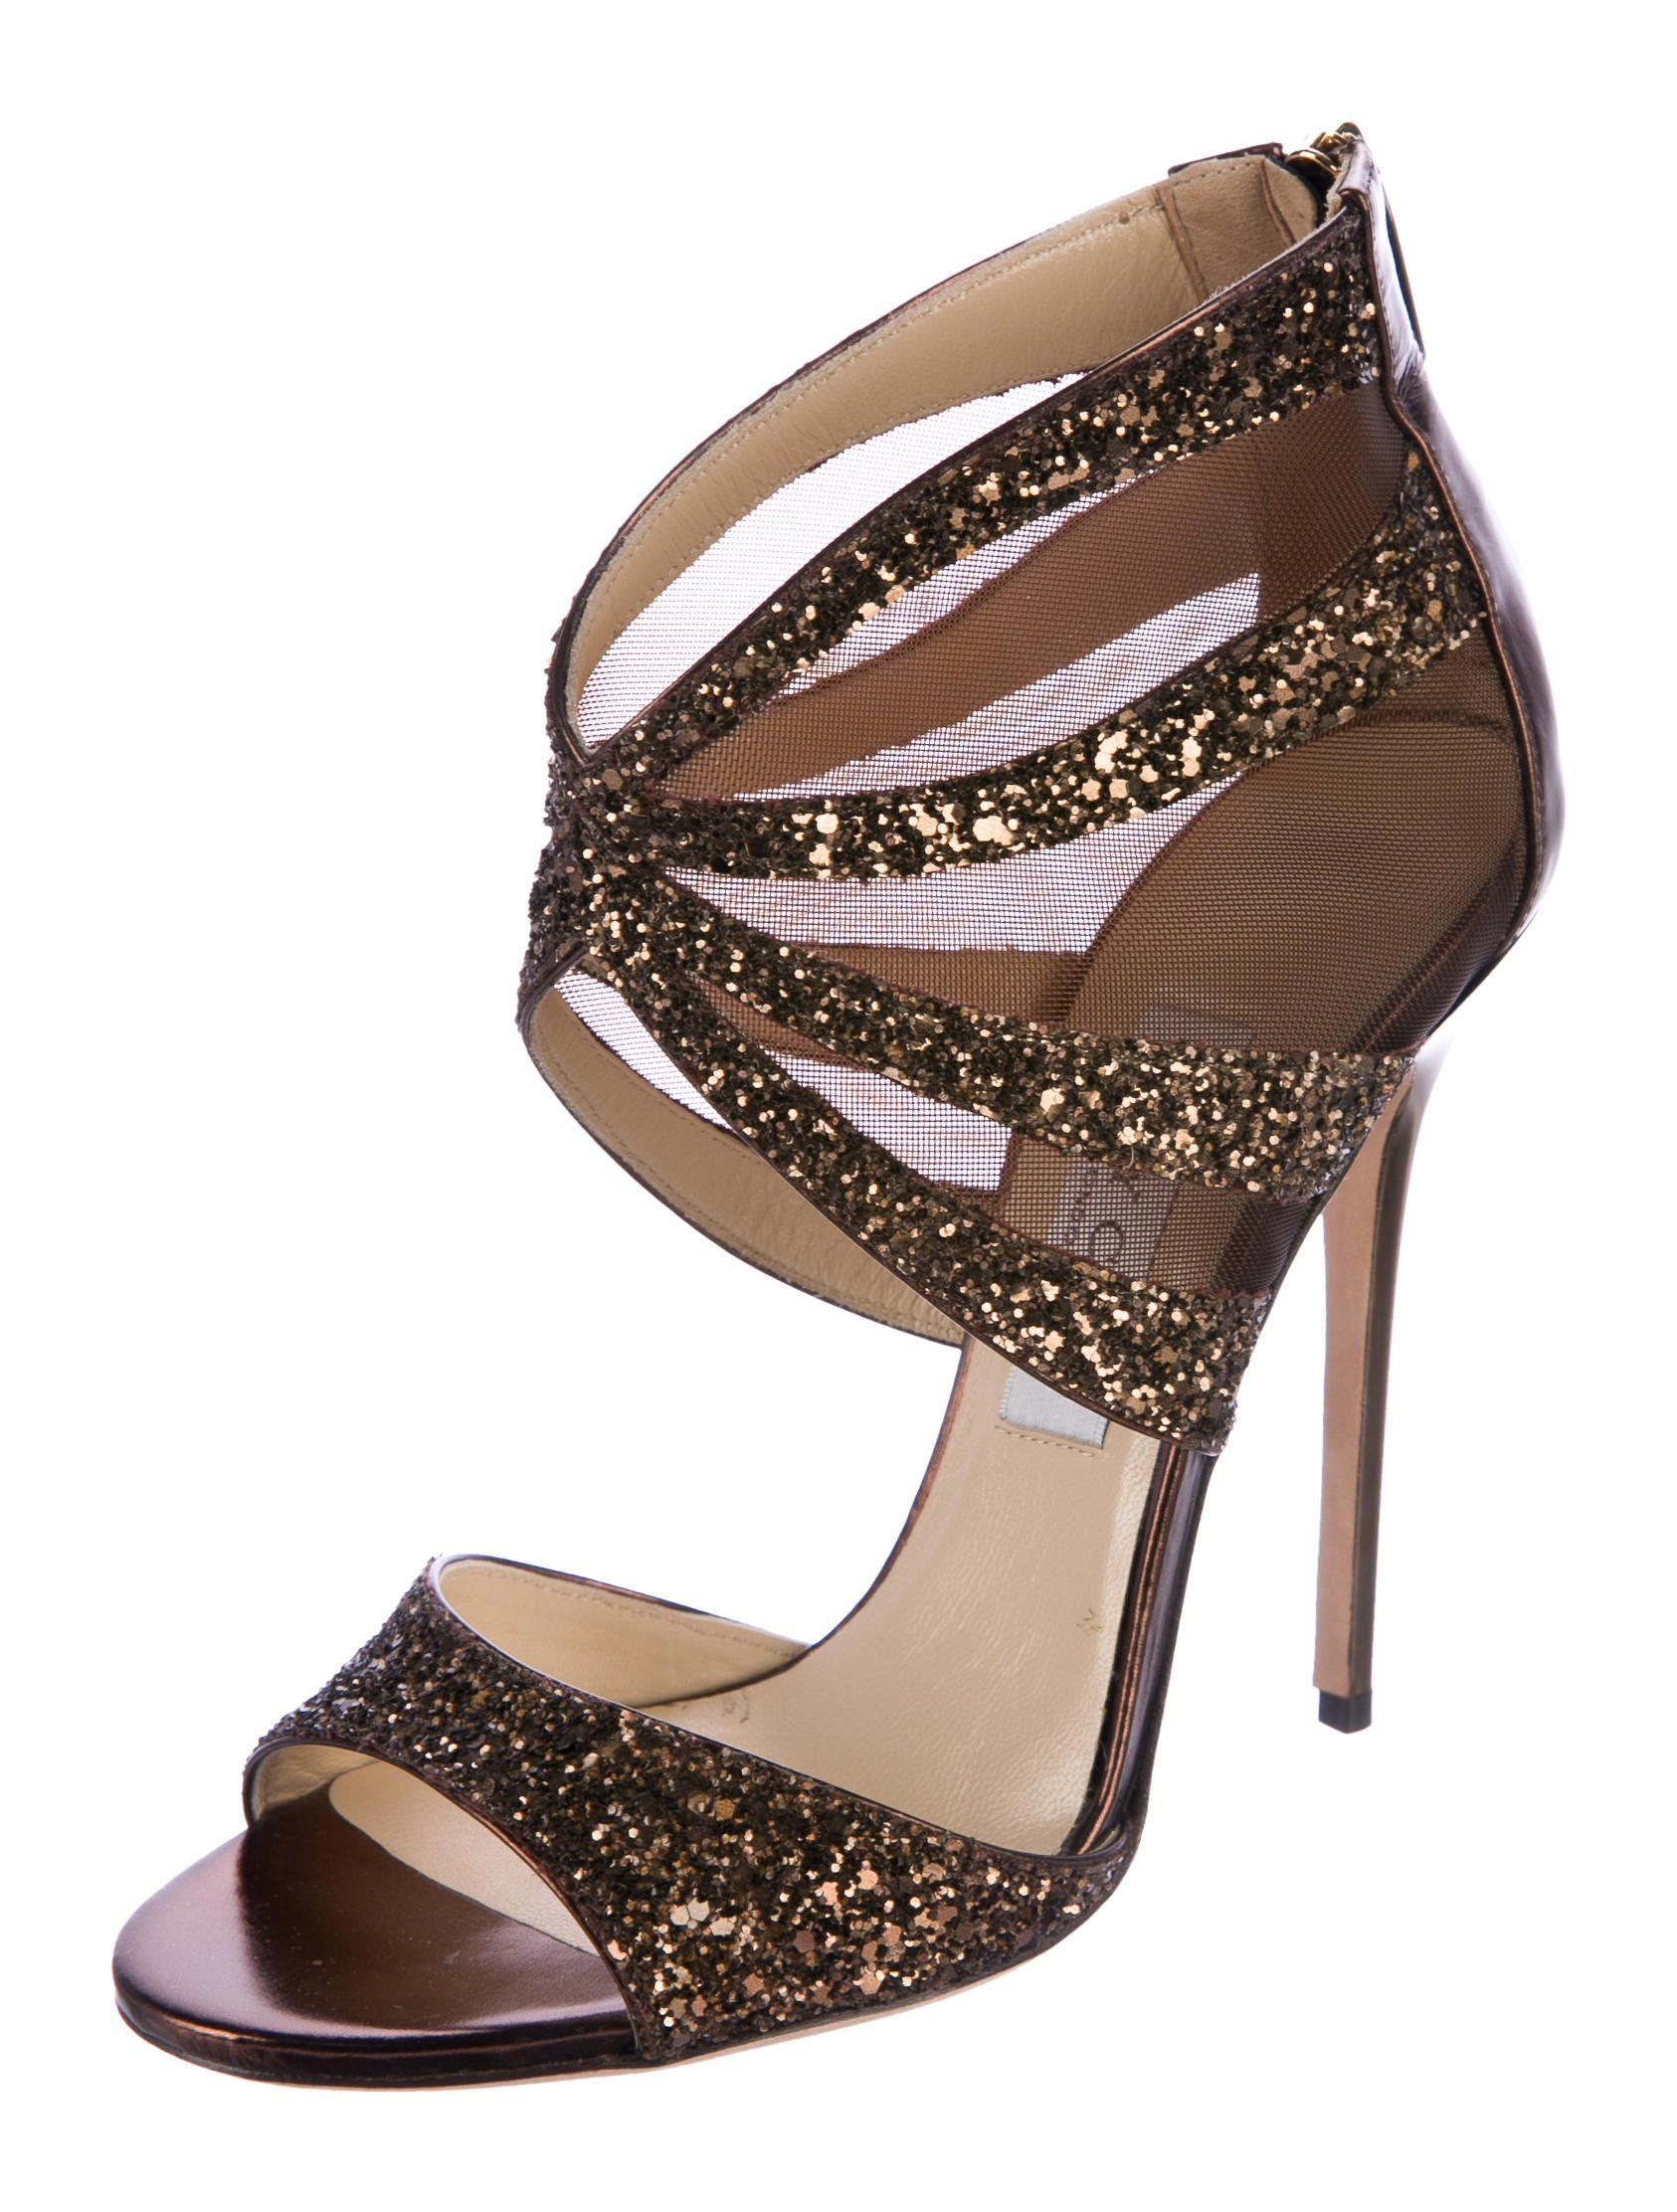 e0d98a52d23 Jimmy Choo. Brown and black glitter peep-toe cut-out sandals.  therealreal   preowndesignershoes  authenticdesignershoes  designerleathersandals   Jimmychoo ...